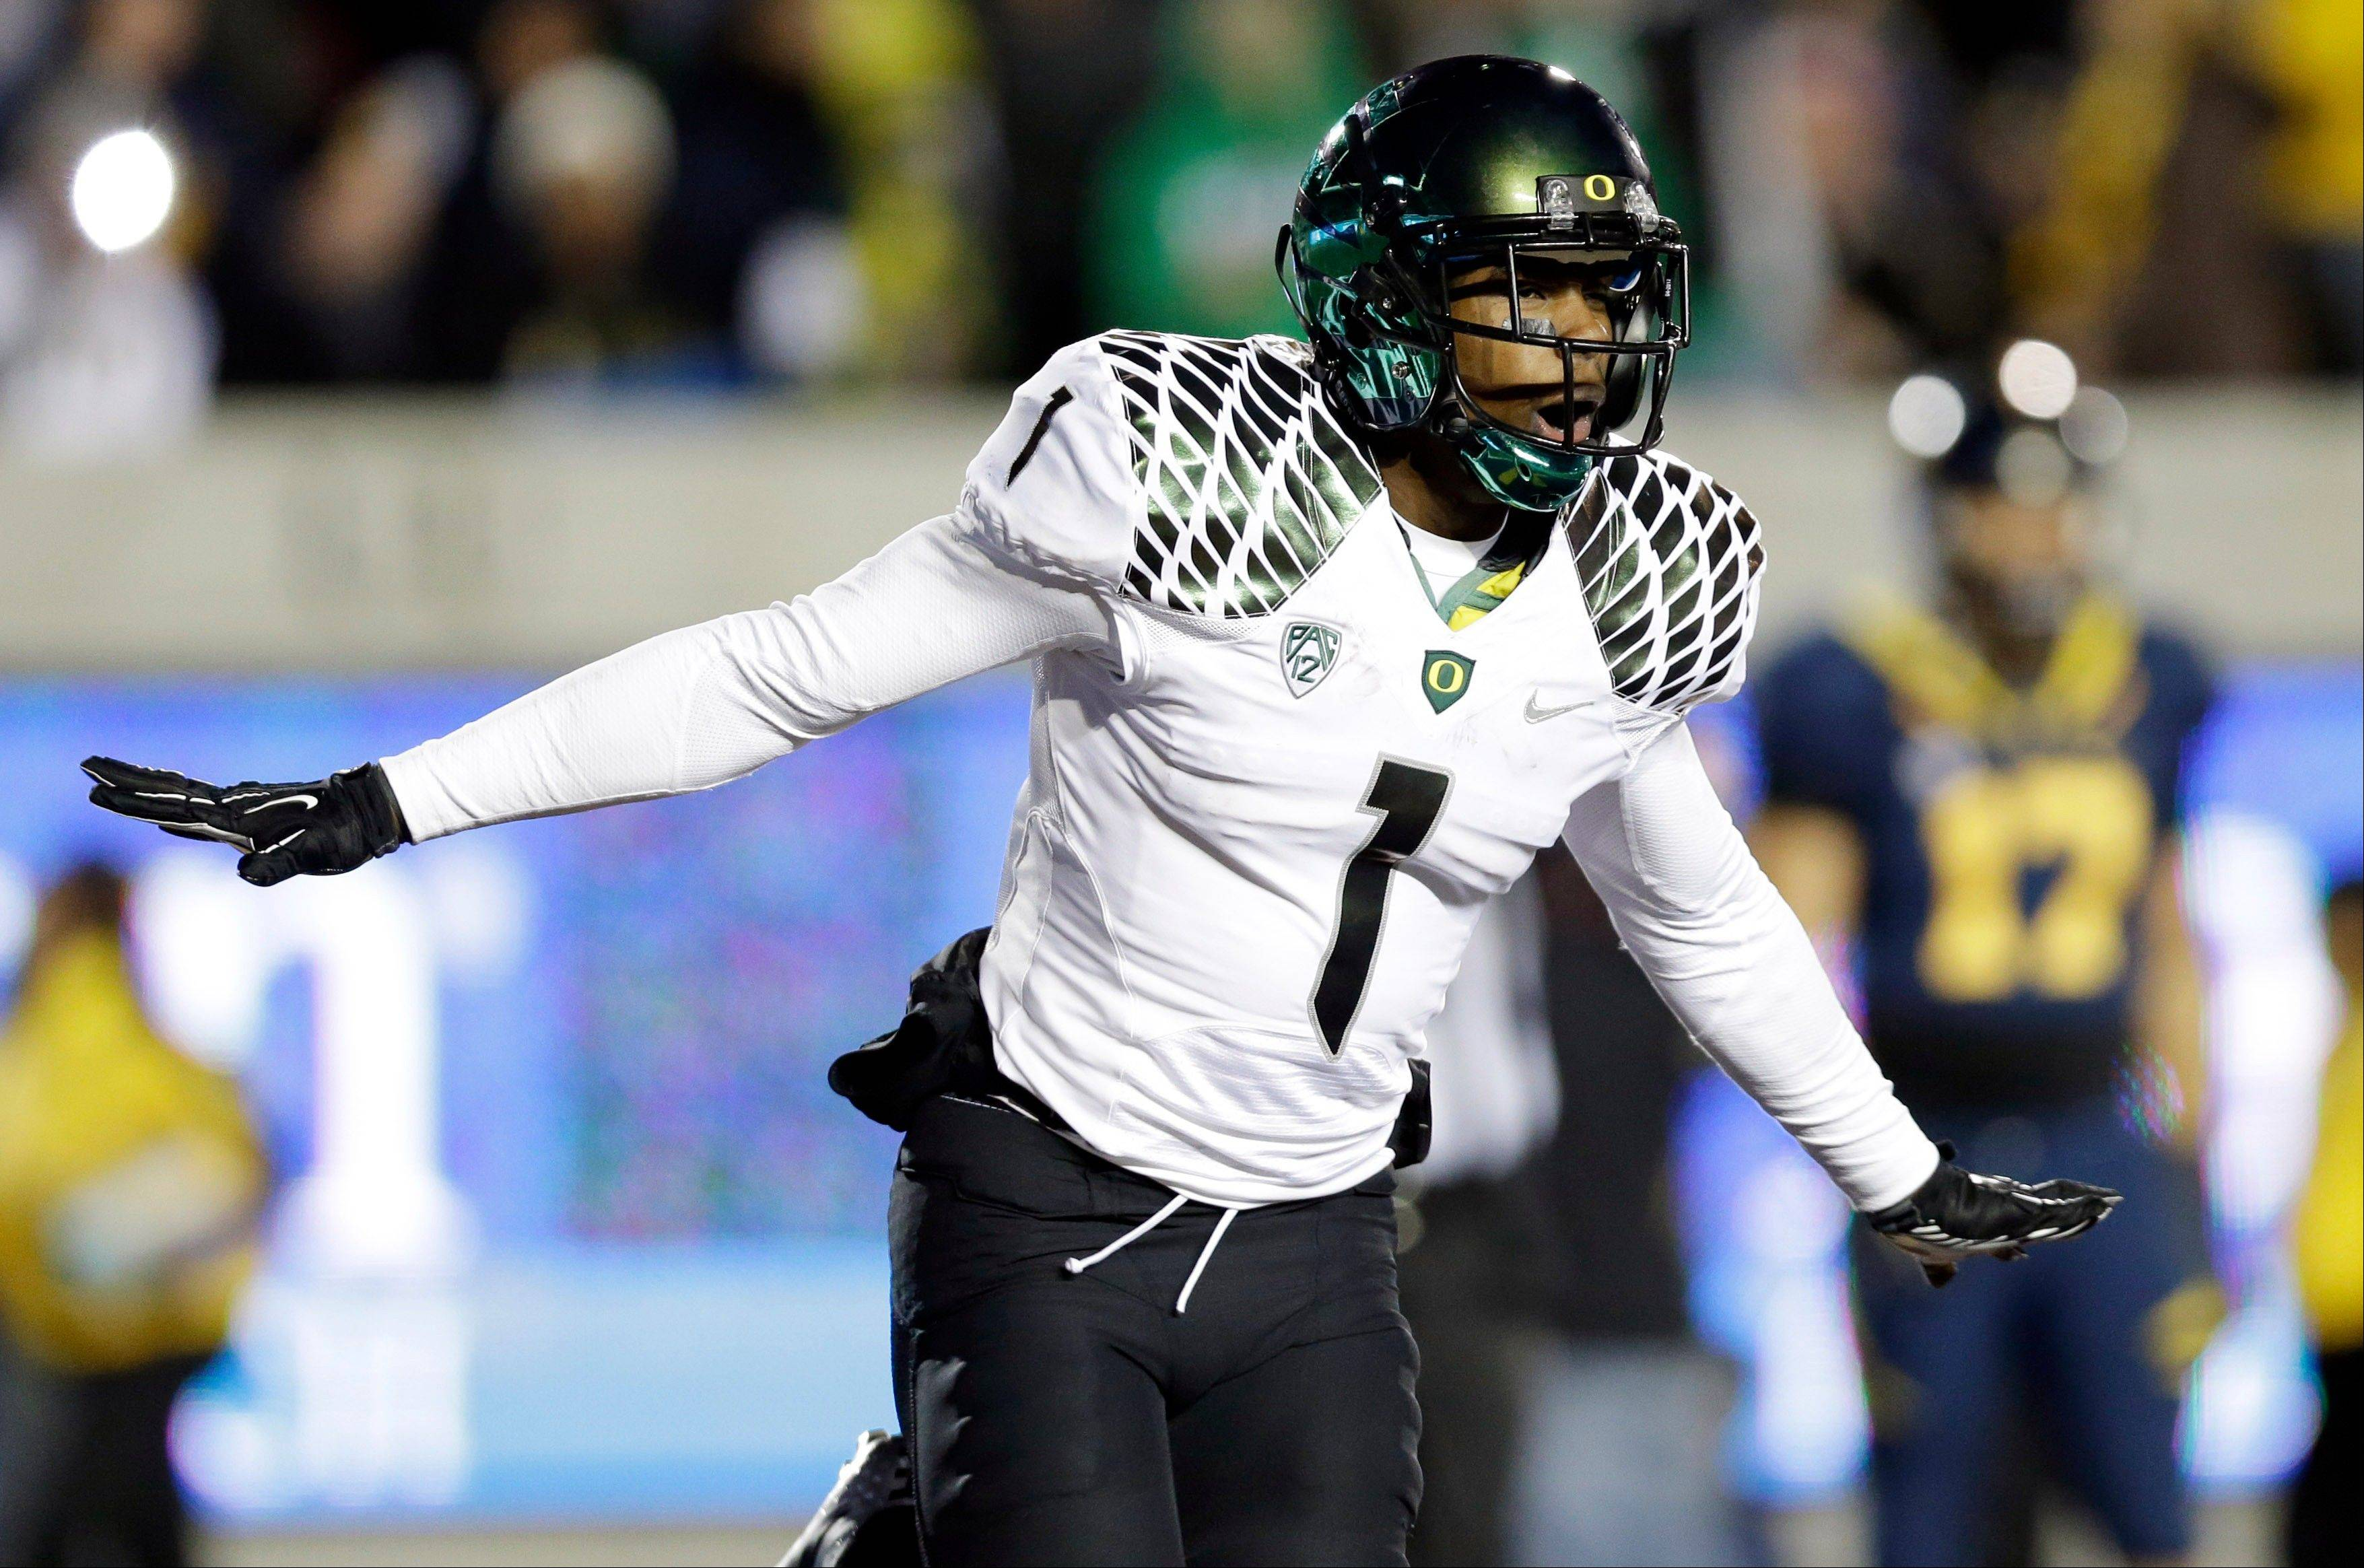 Oregon wide receiver Josh Huff celebrates after his 35-yard touchdown catch against California on Saturday. Oregon, Kansas State and Notre Dame are the only unbeaten teams in the running for the BCS title game.